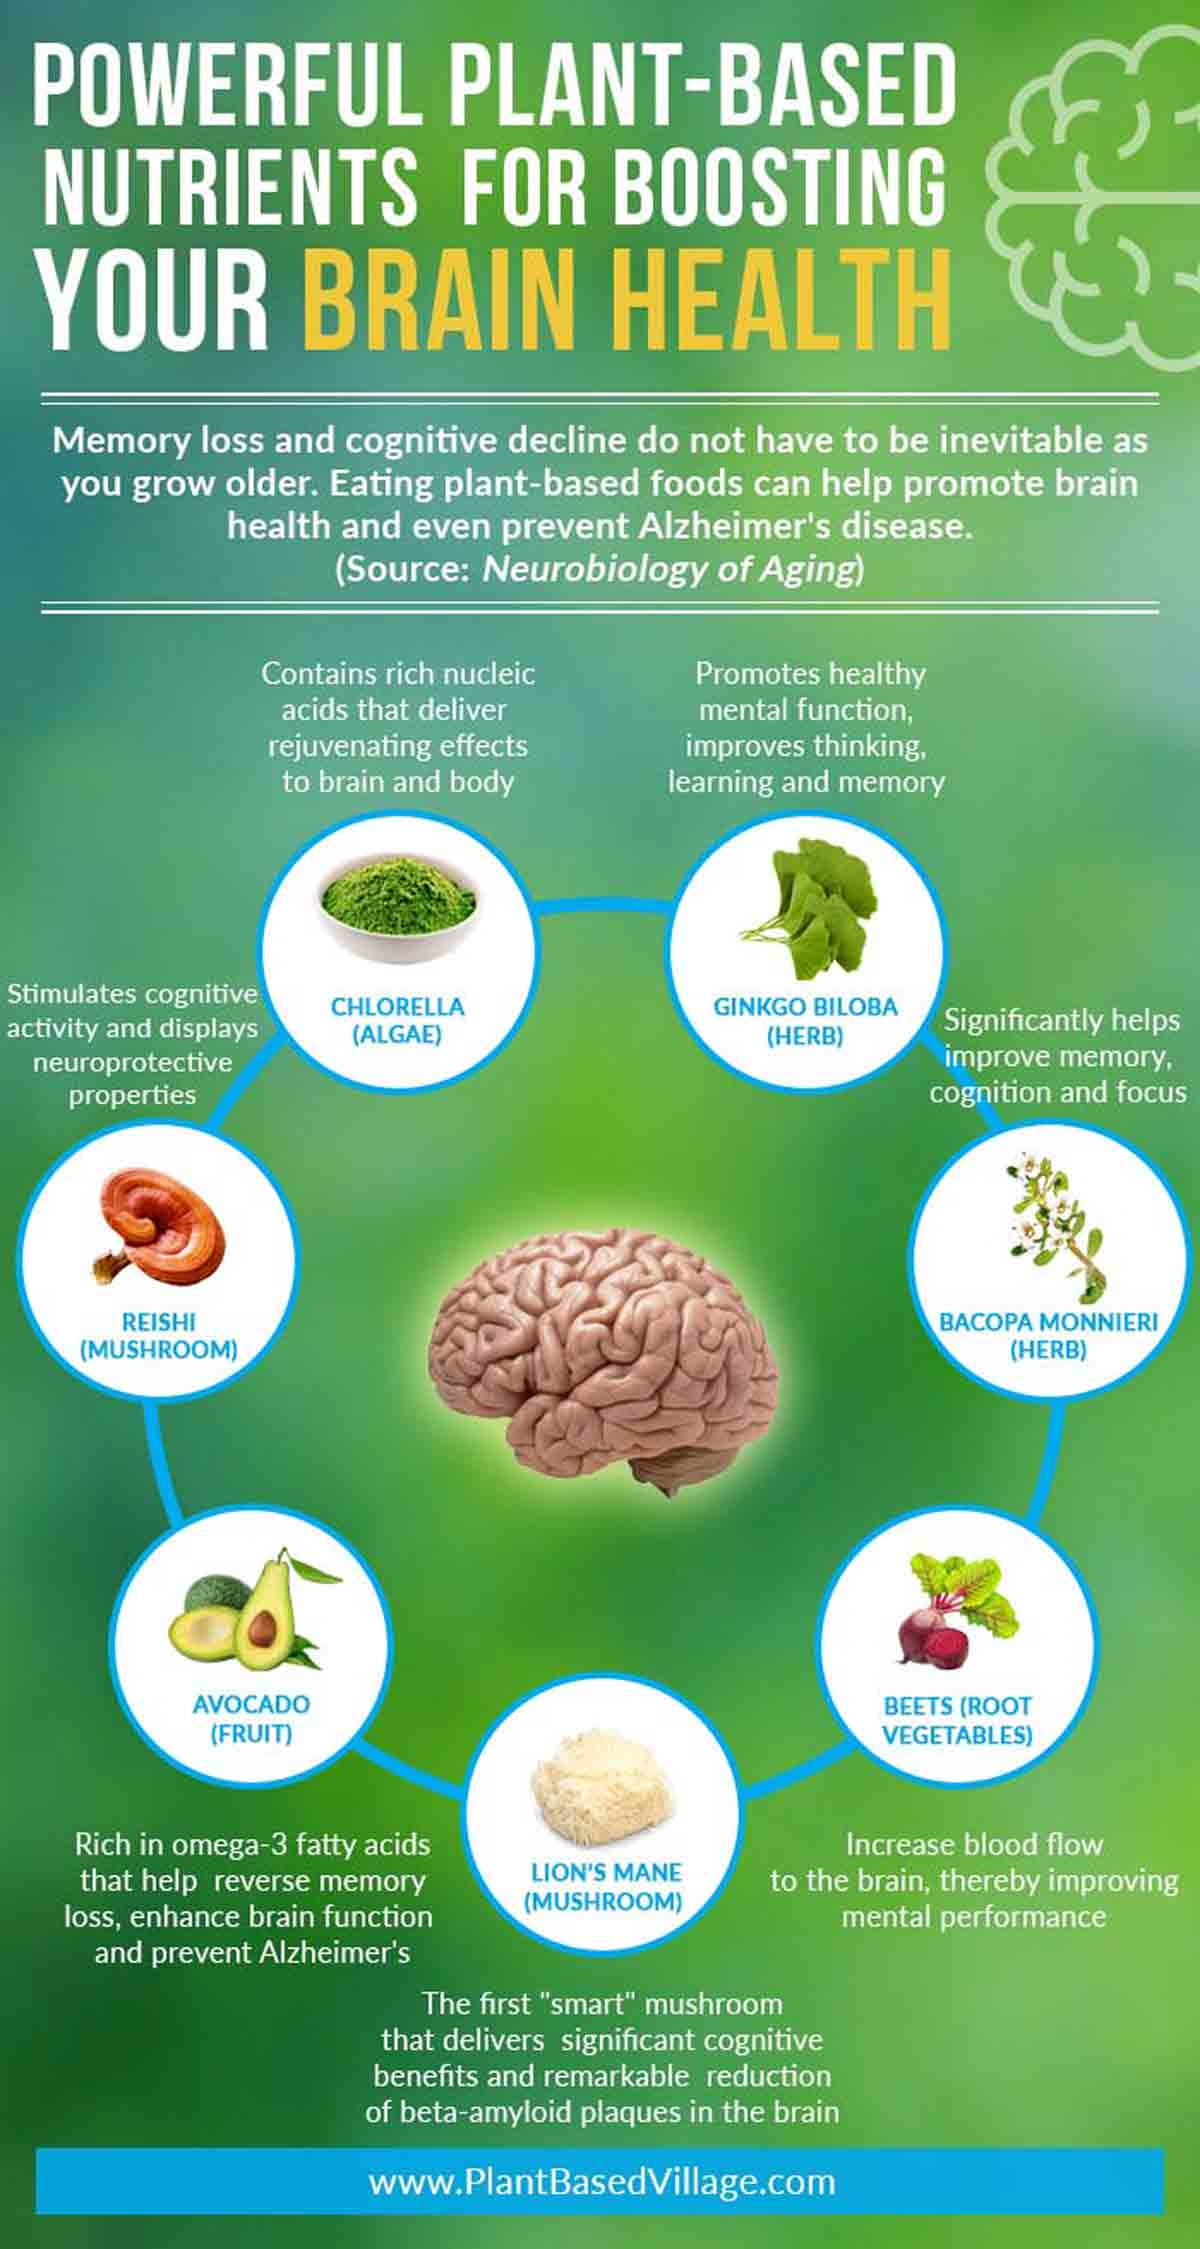 infographic - nutrients for boosting brain health